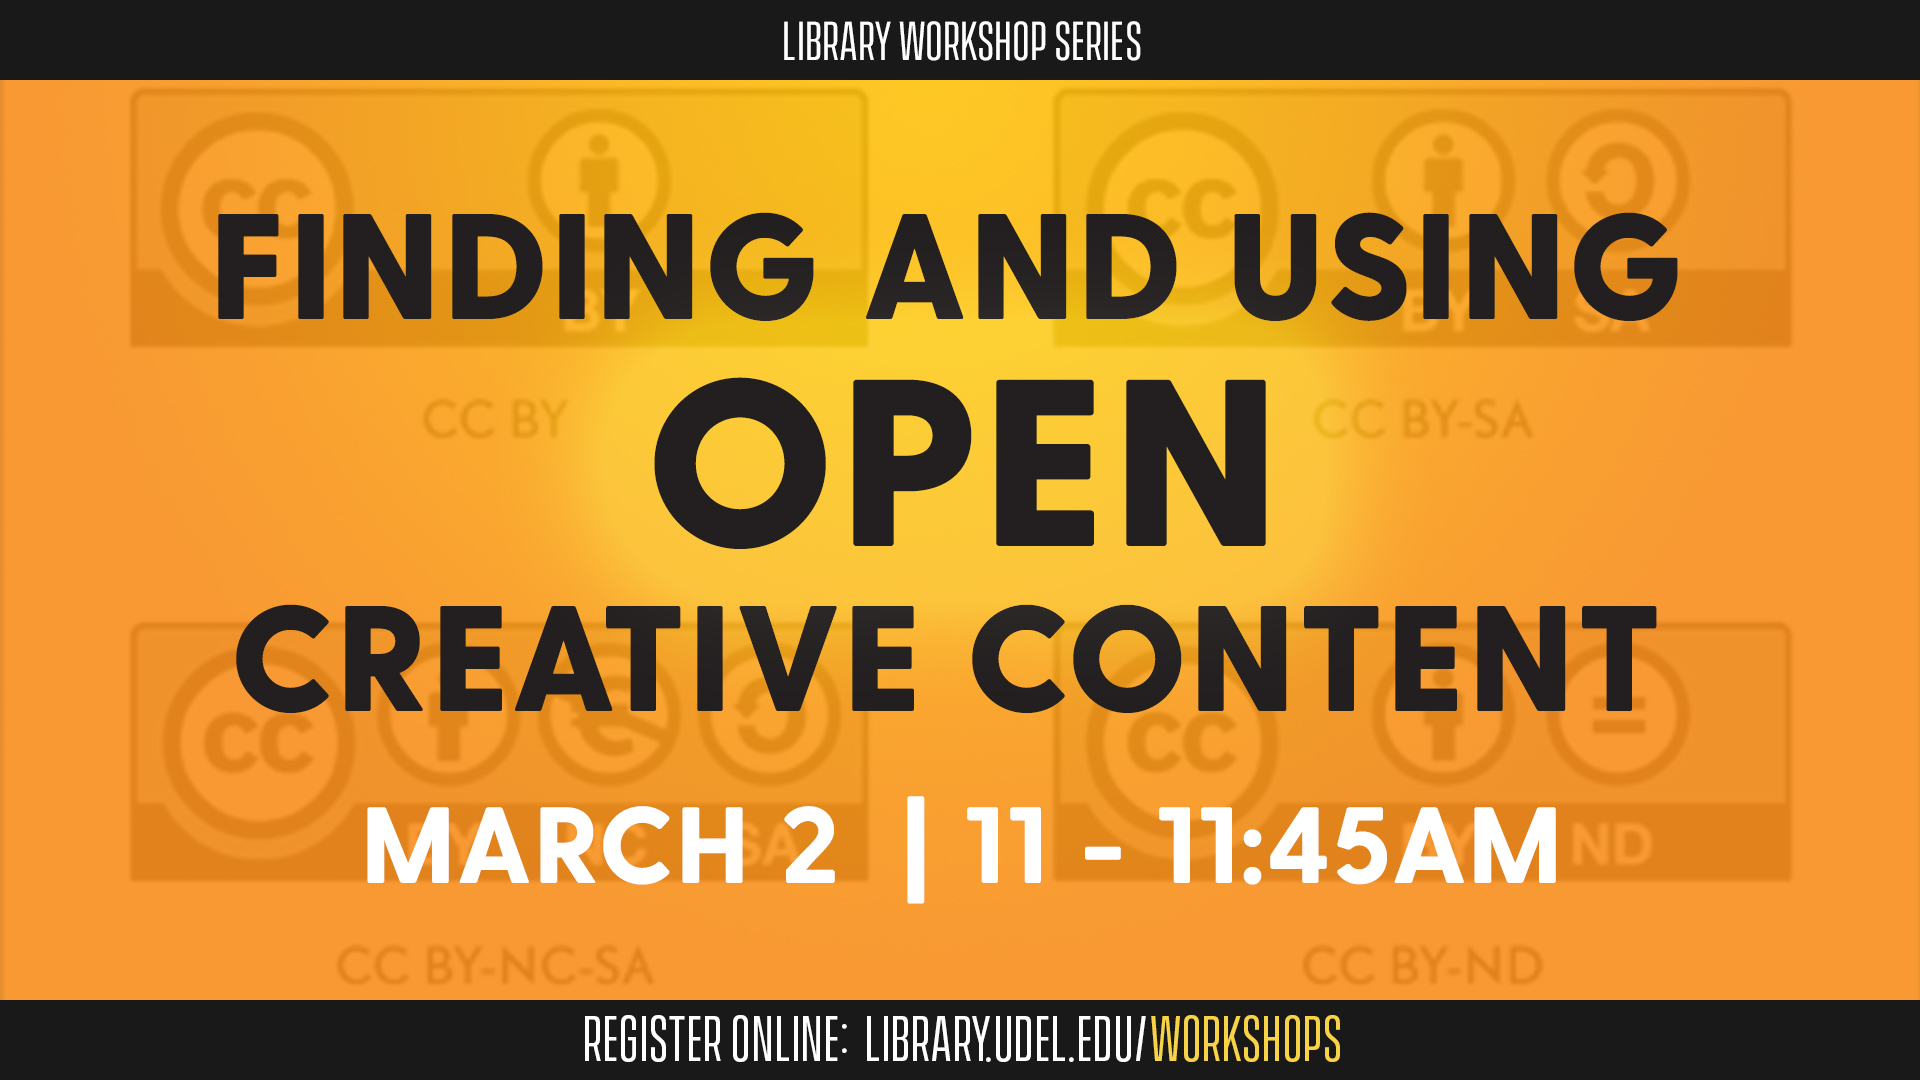 Finding and Using Open Creative Content